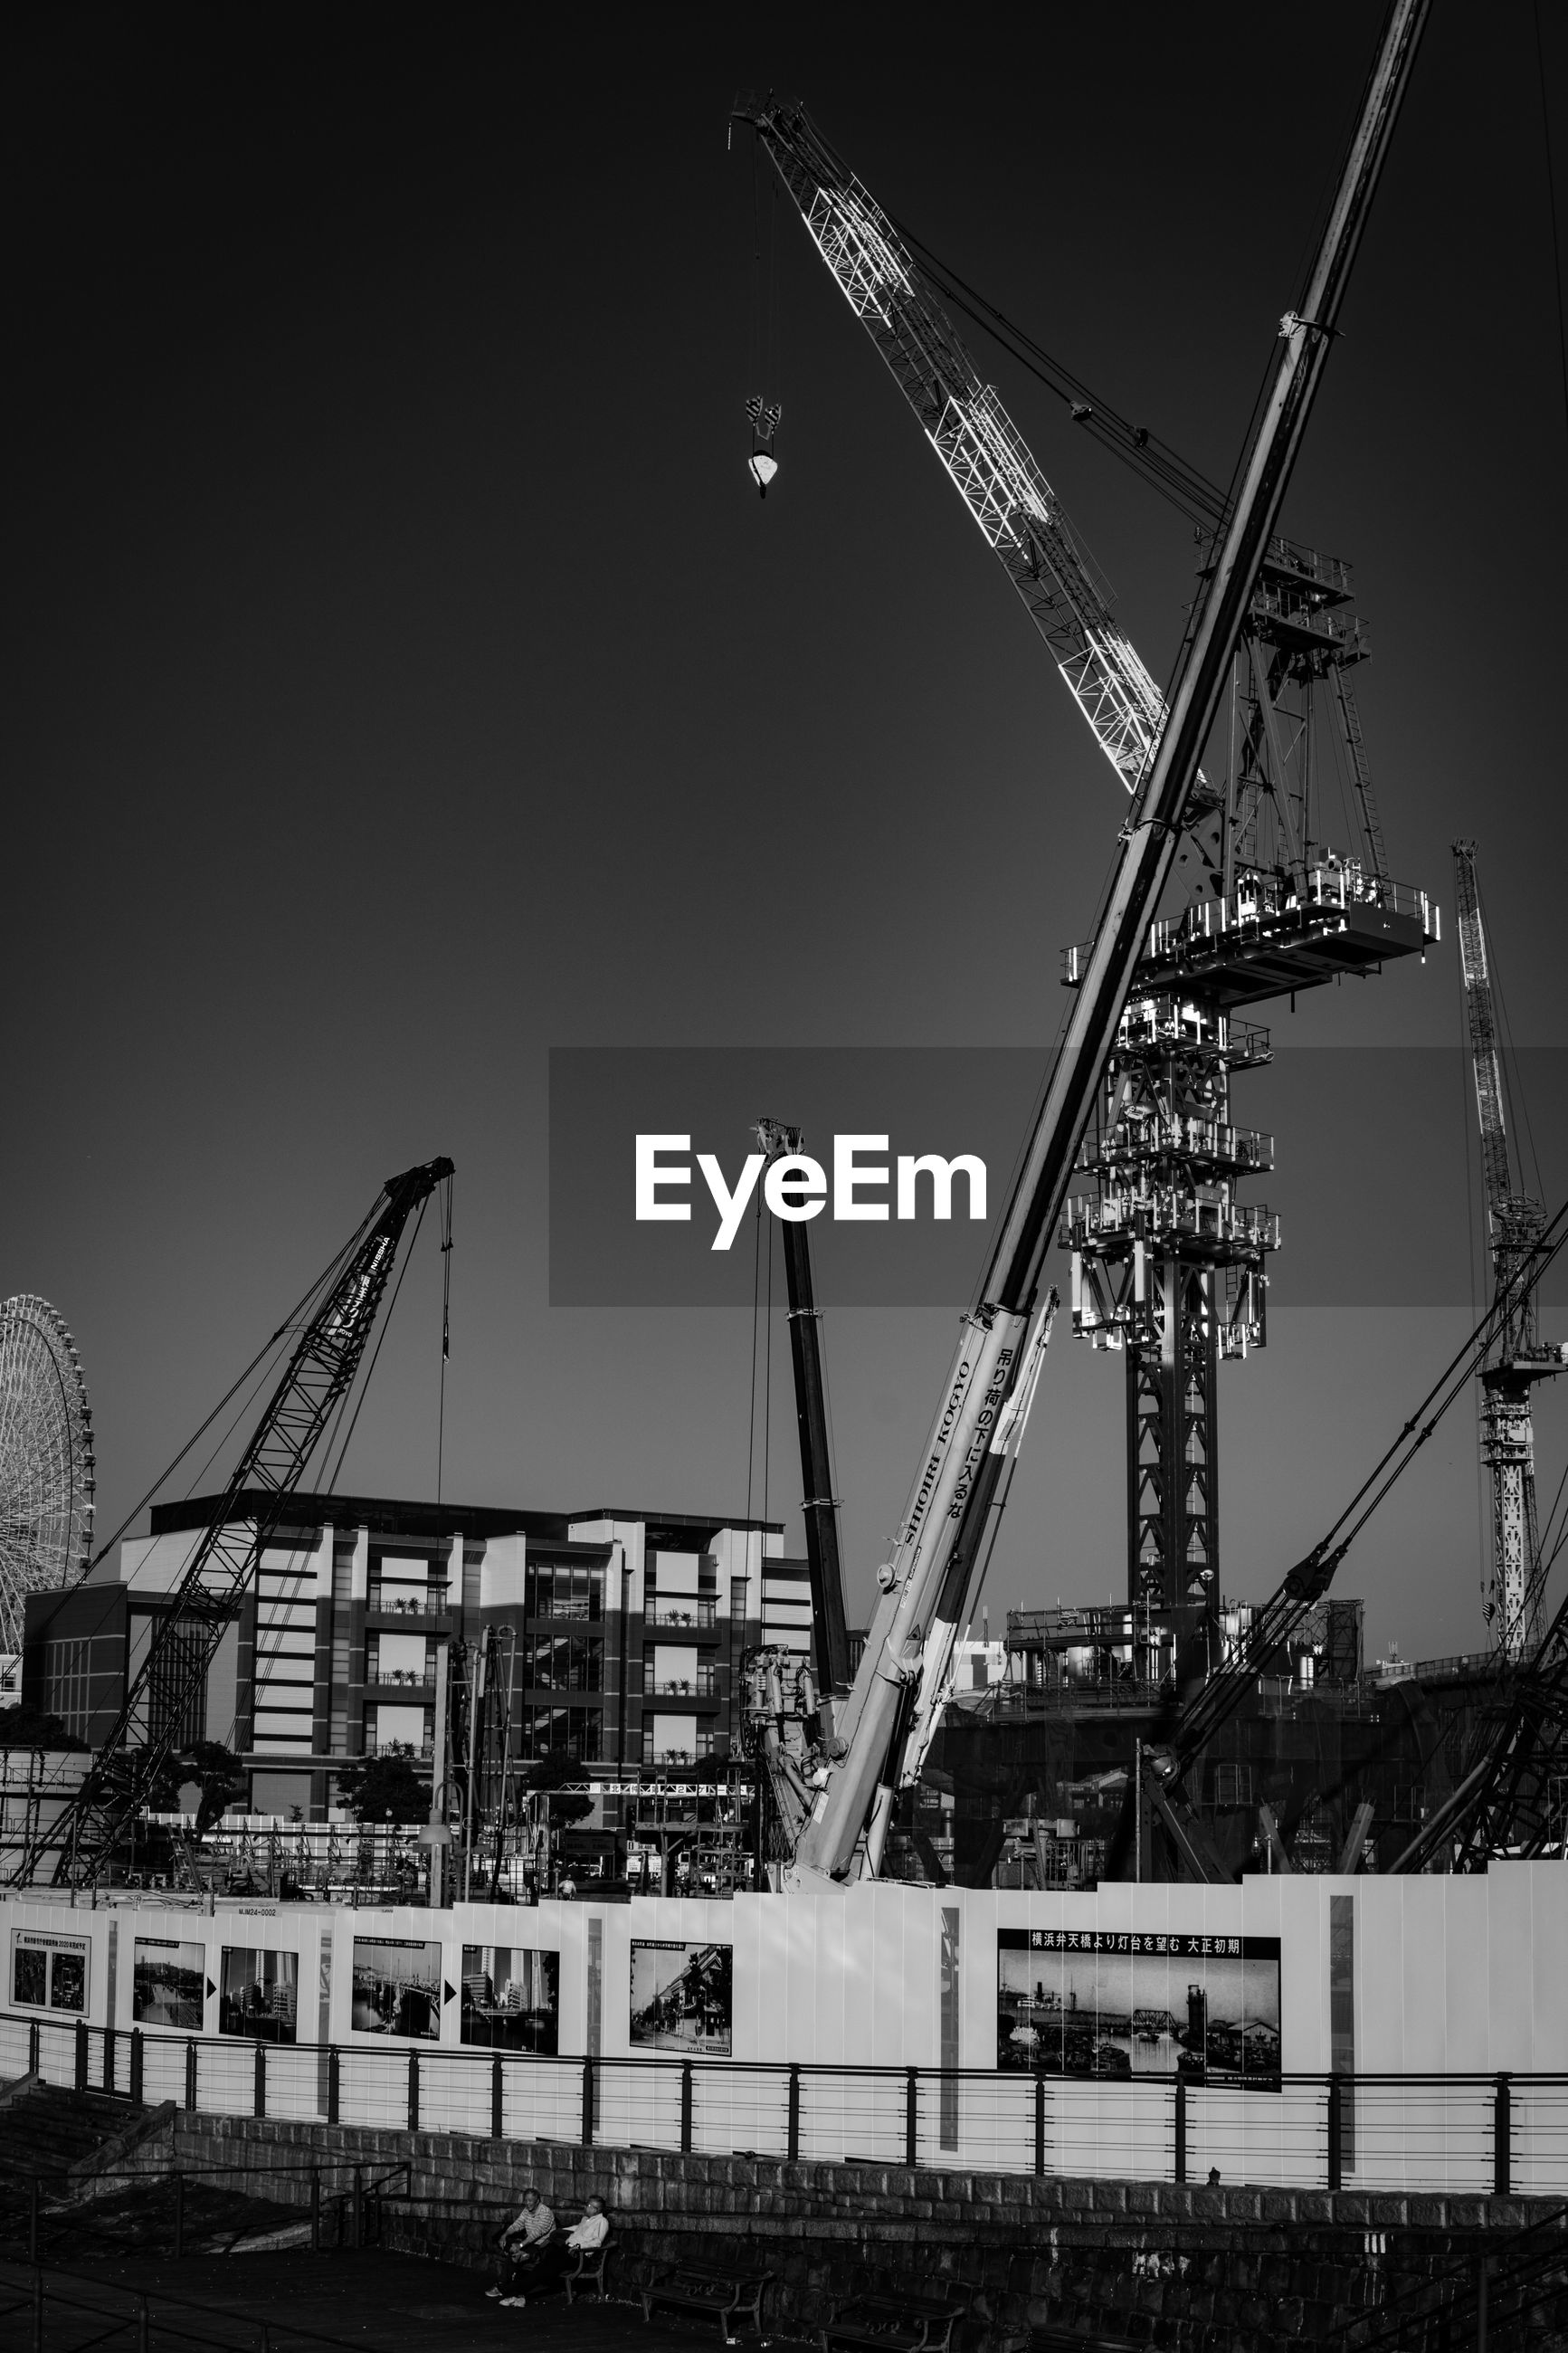 architecture, built structure, building exterior, construction site, development, clear sky, crane - construction machinery, outdoors, industry, no people, city, sky, day, water, cityscape